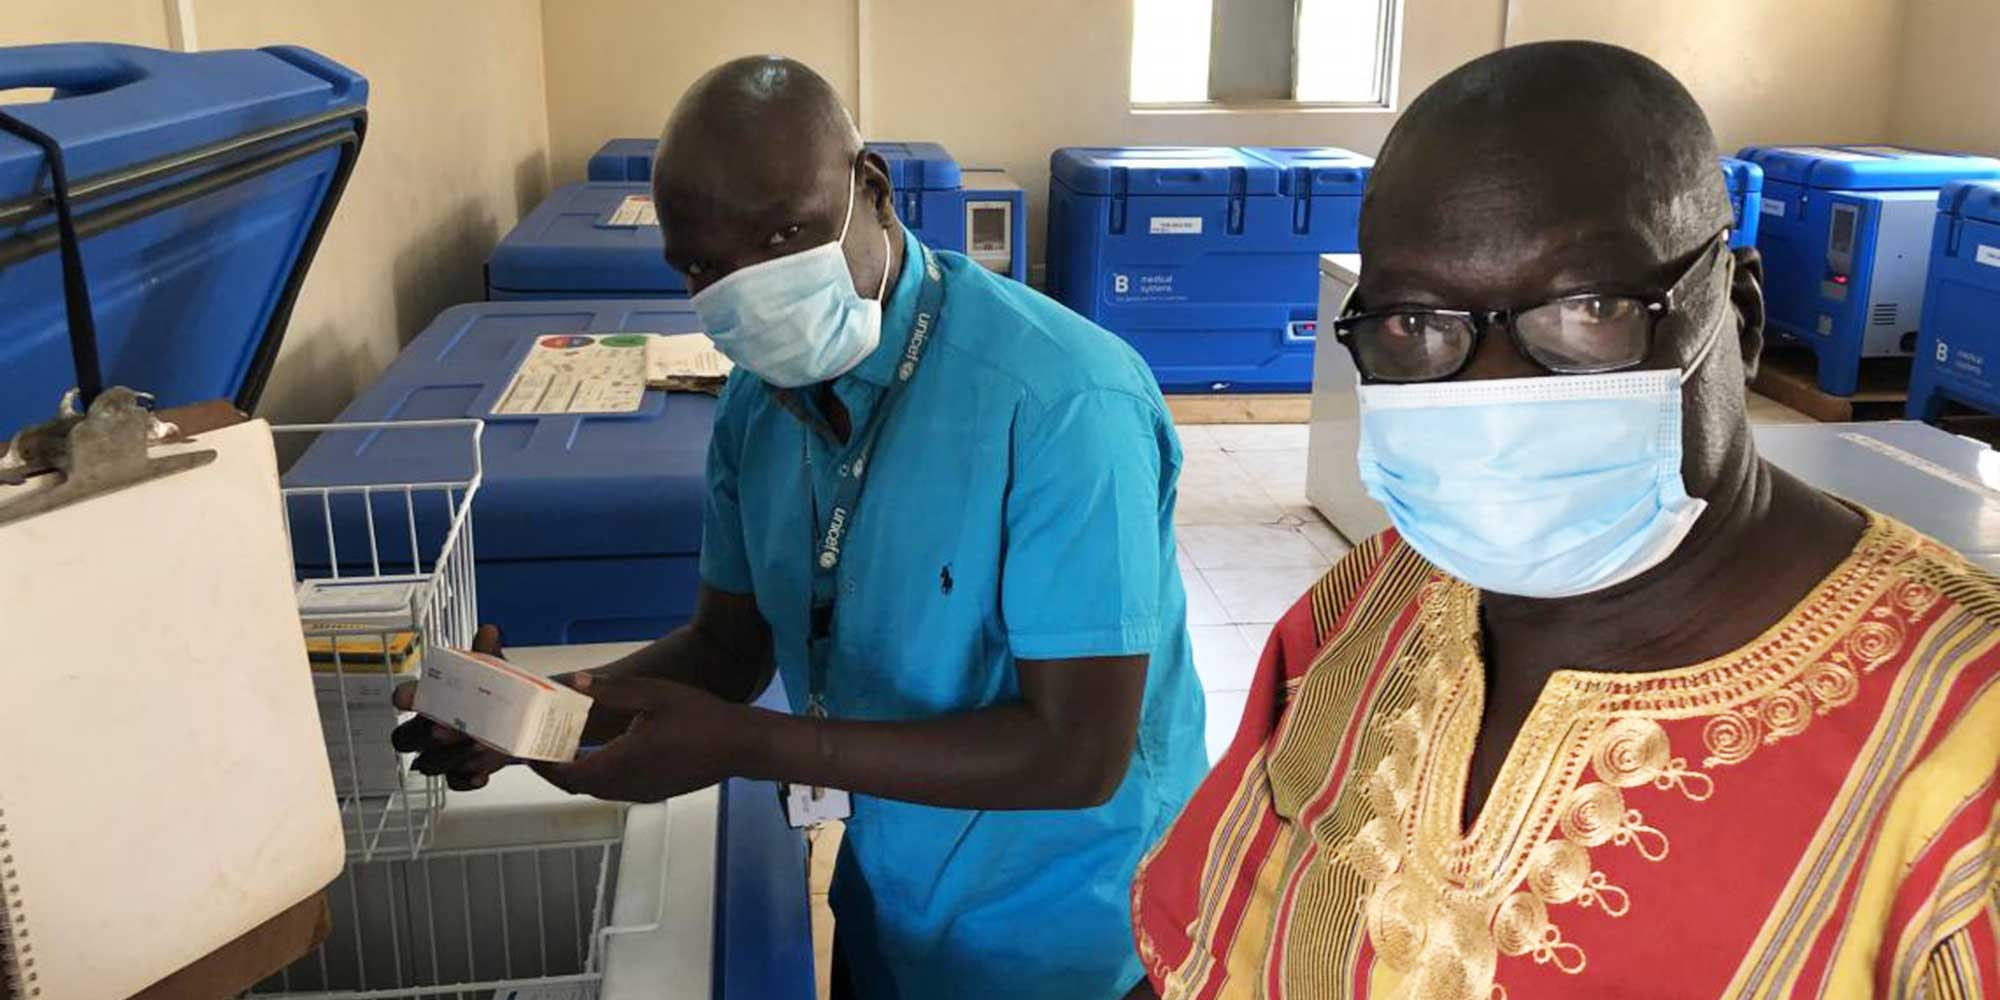 @ UNICEFSouthSudan/Willemot Evans Ariko Shawish (right) Manager, Expanded Programme for Immunization, Ministry of Health, Western Equatoria State and Daniel Drinchi, Health Officer, UNICEF Yambio field office, inspecting the central cold chain storage in the state capital Yambio. The cold chain is now used for measles and polio vaccines among others and will soon also be used for COVID-19 vaccines.